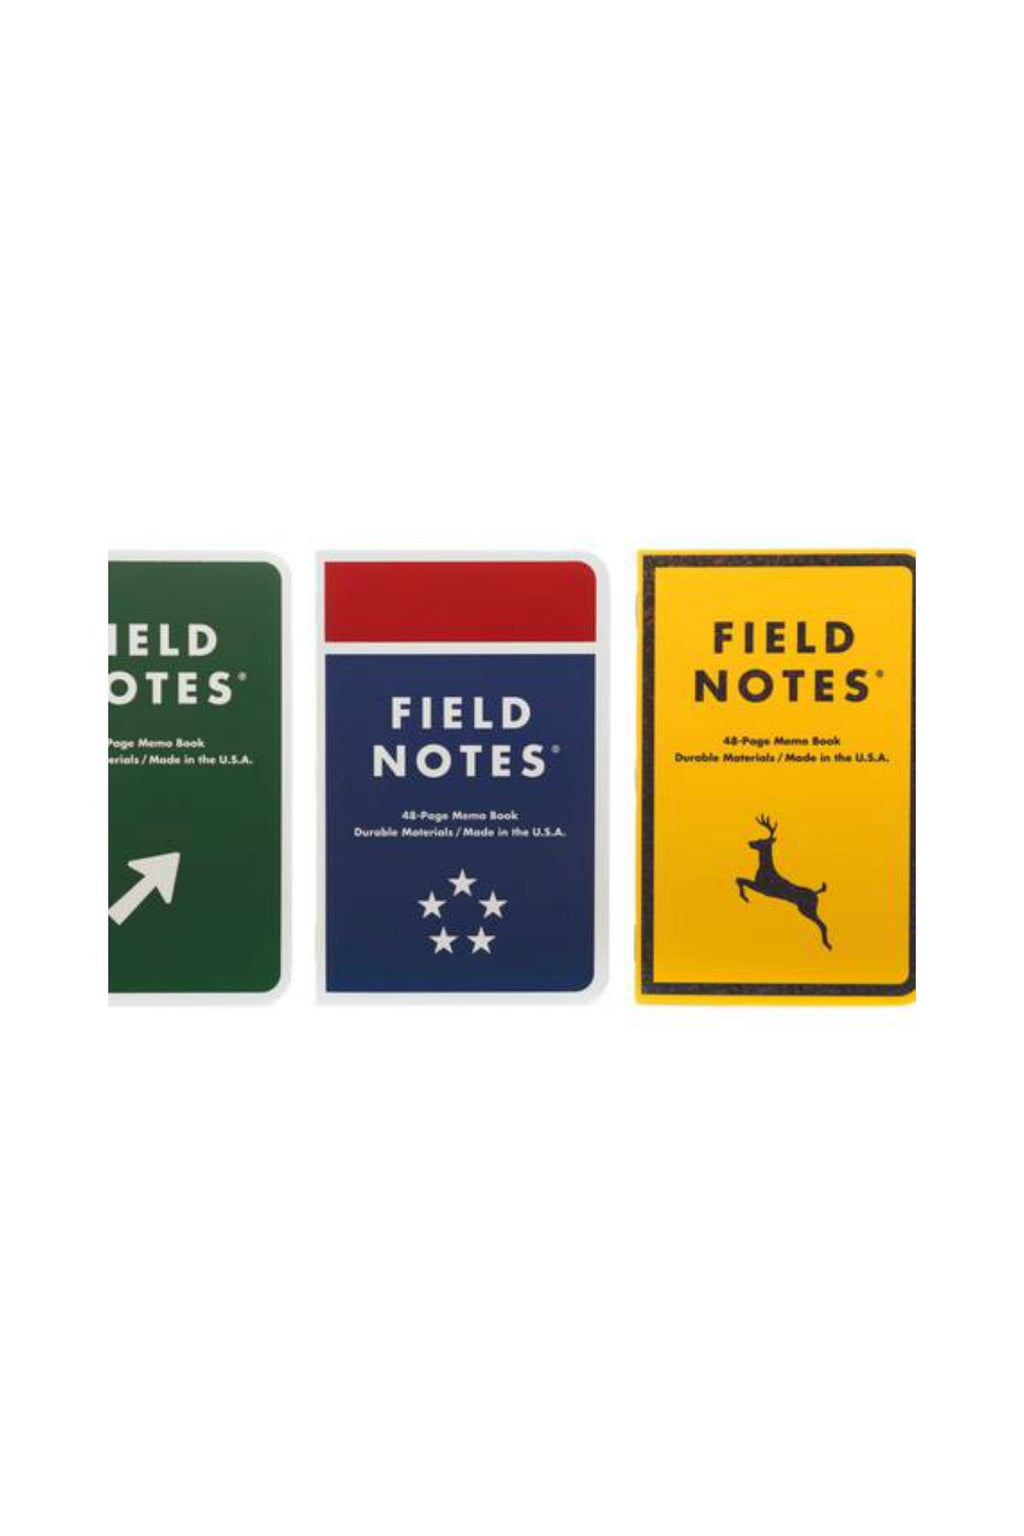 Field Notes Mile Marker Edition